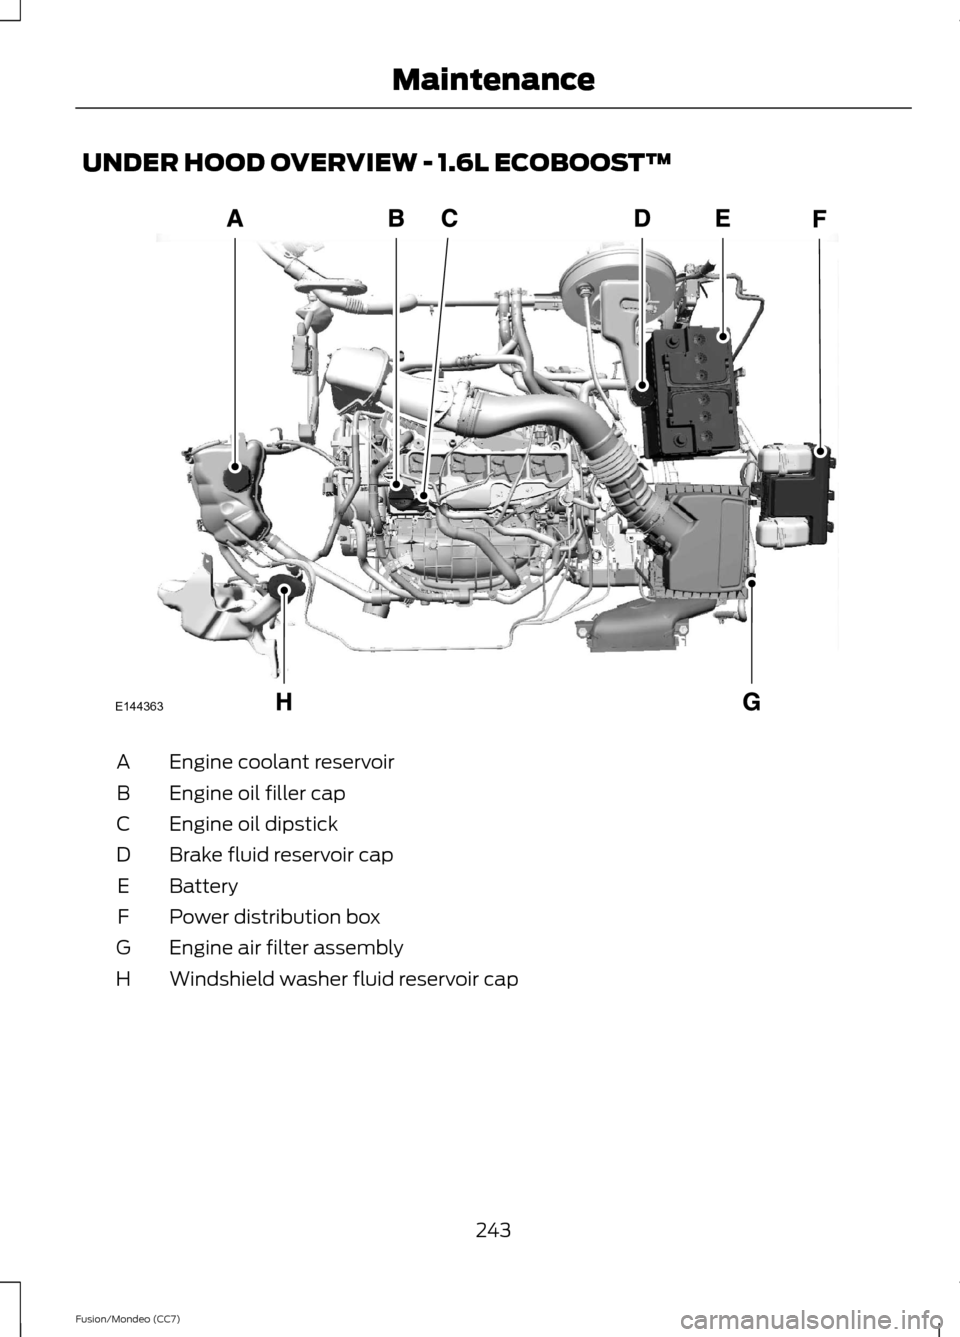 FORD FUSION (AMERICAS) 2013 2.G Owners Manual UNDER HOOD OVERVIEW - 1.6L ECOBOOST™ Engine coolant reservoir A Engine oil filler cap B Engine oil dipstick C Brake fluid reservoir cap D Battery E Power distribution box F Engine air filter assembl